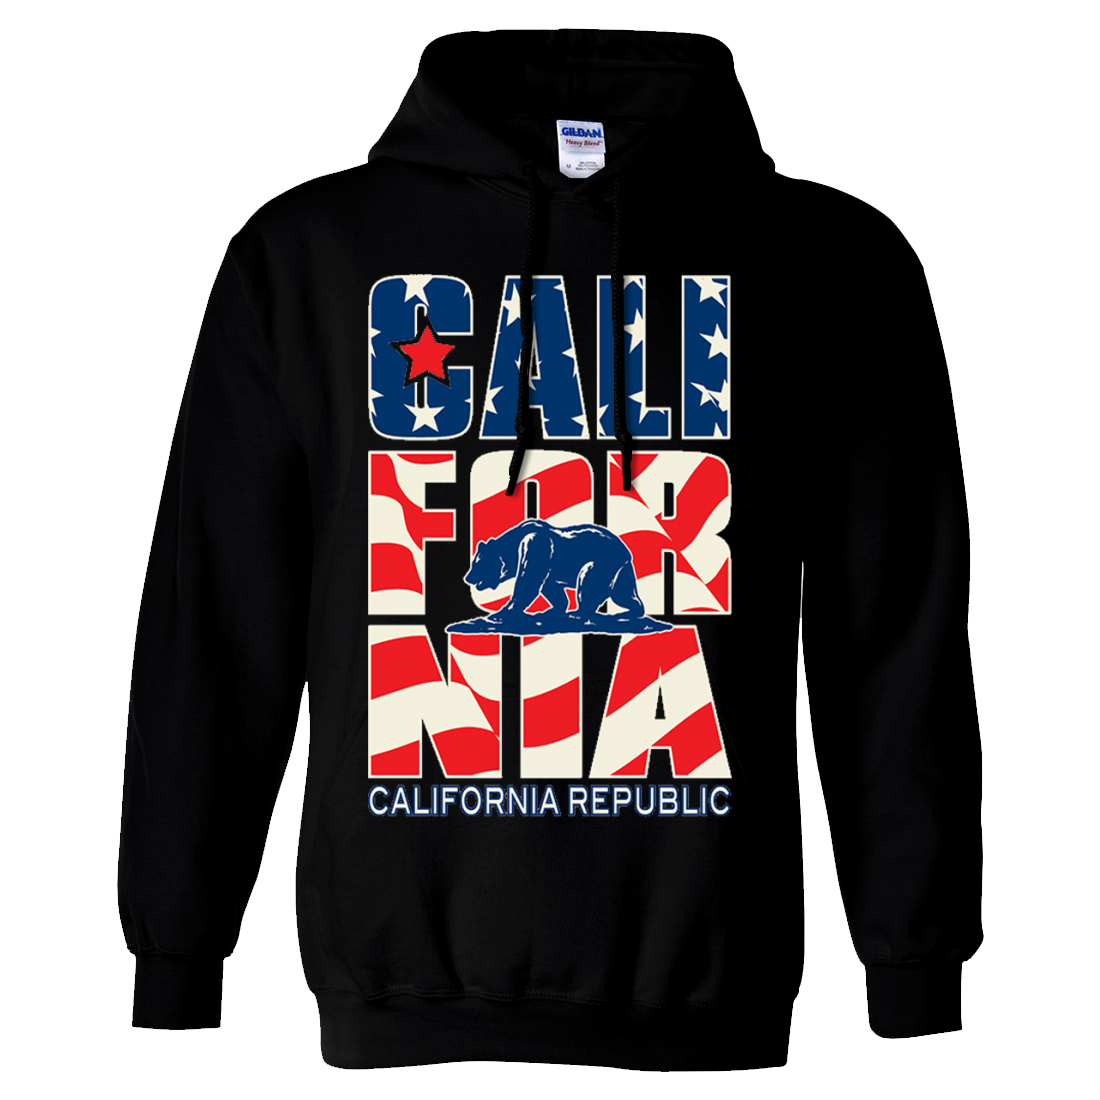 Clothing, Shoes & Accessories > Men's Clothing > Sweats & Hoodies